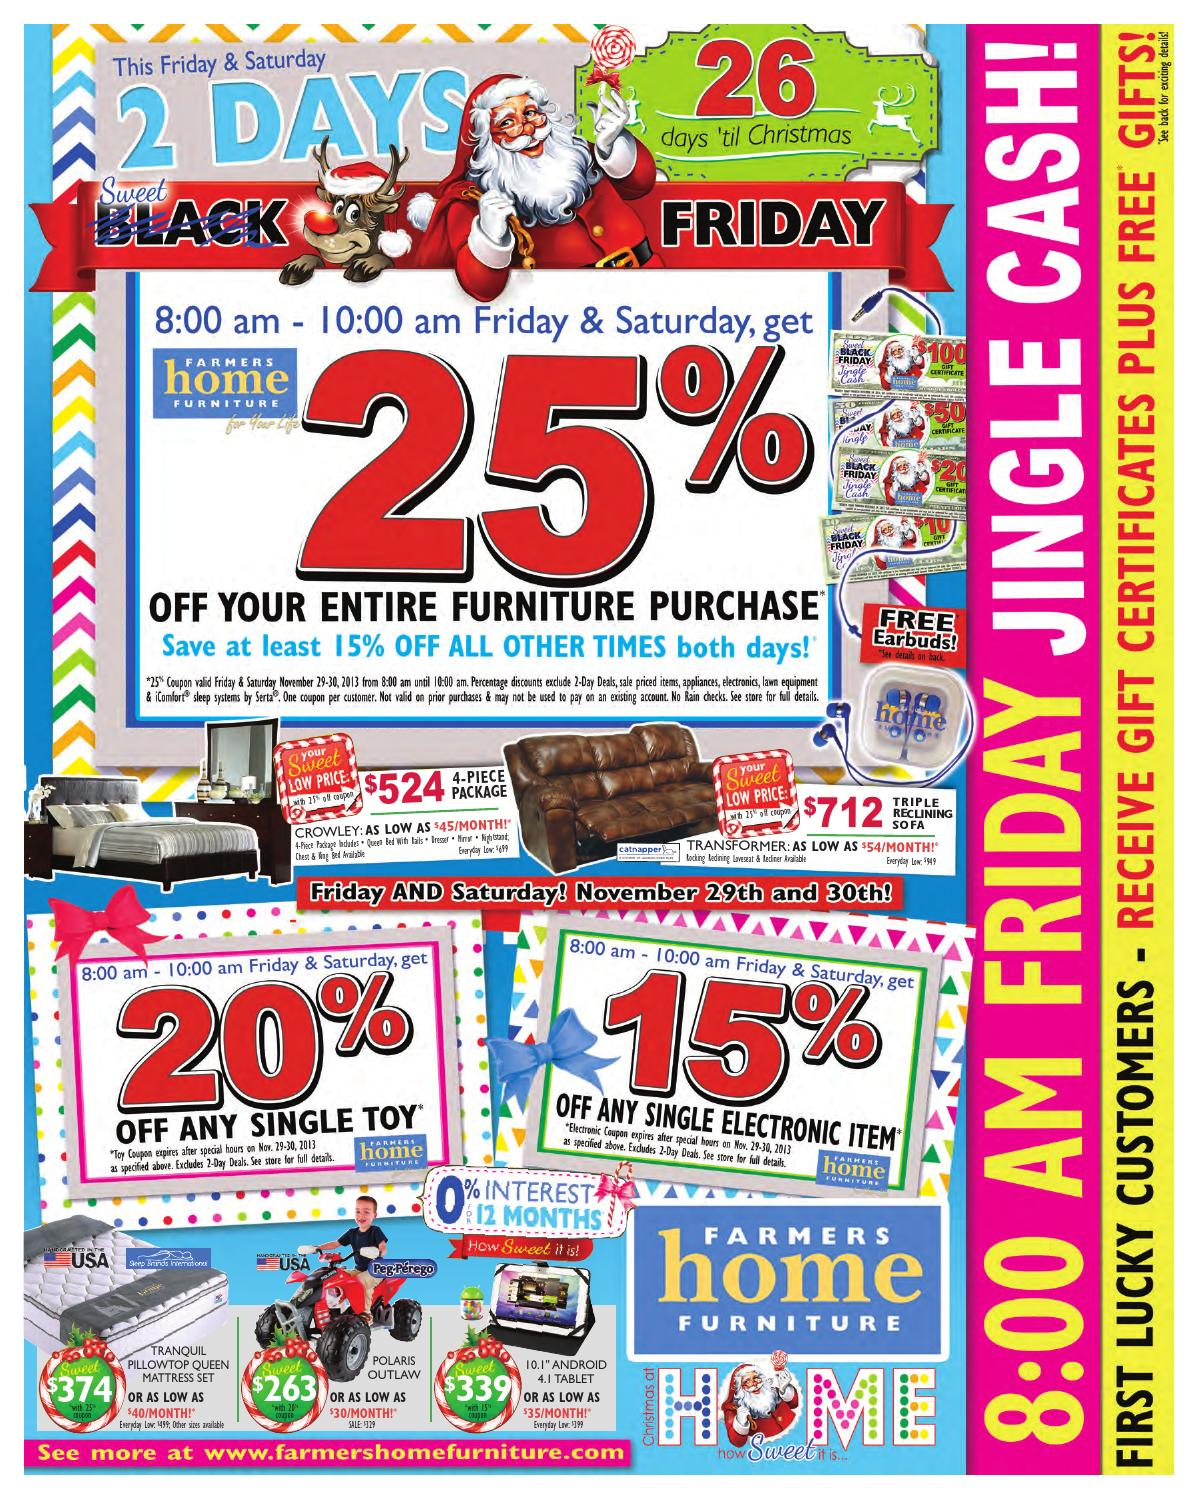 Black Friday By Farmers Home Furniture Issuu